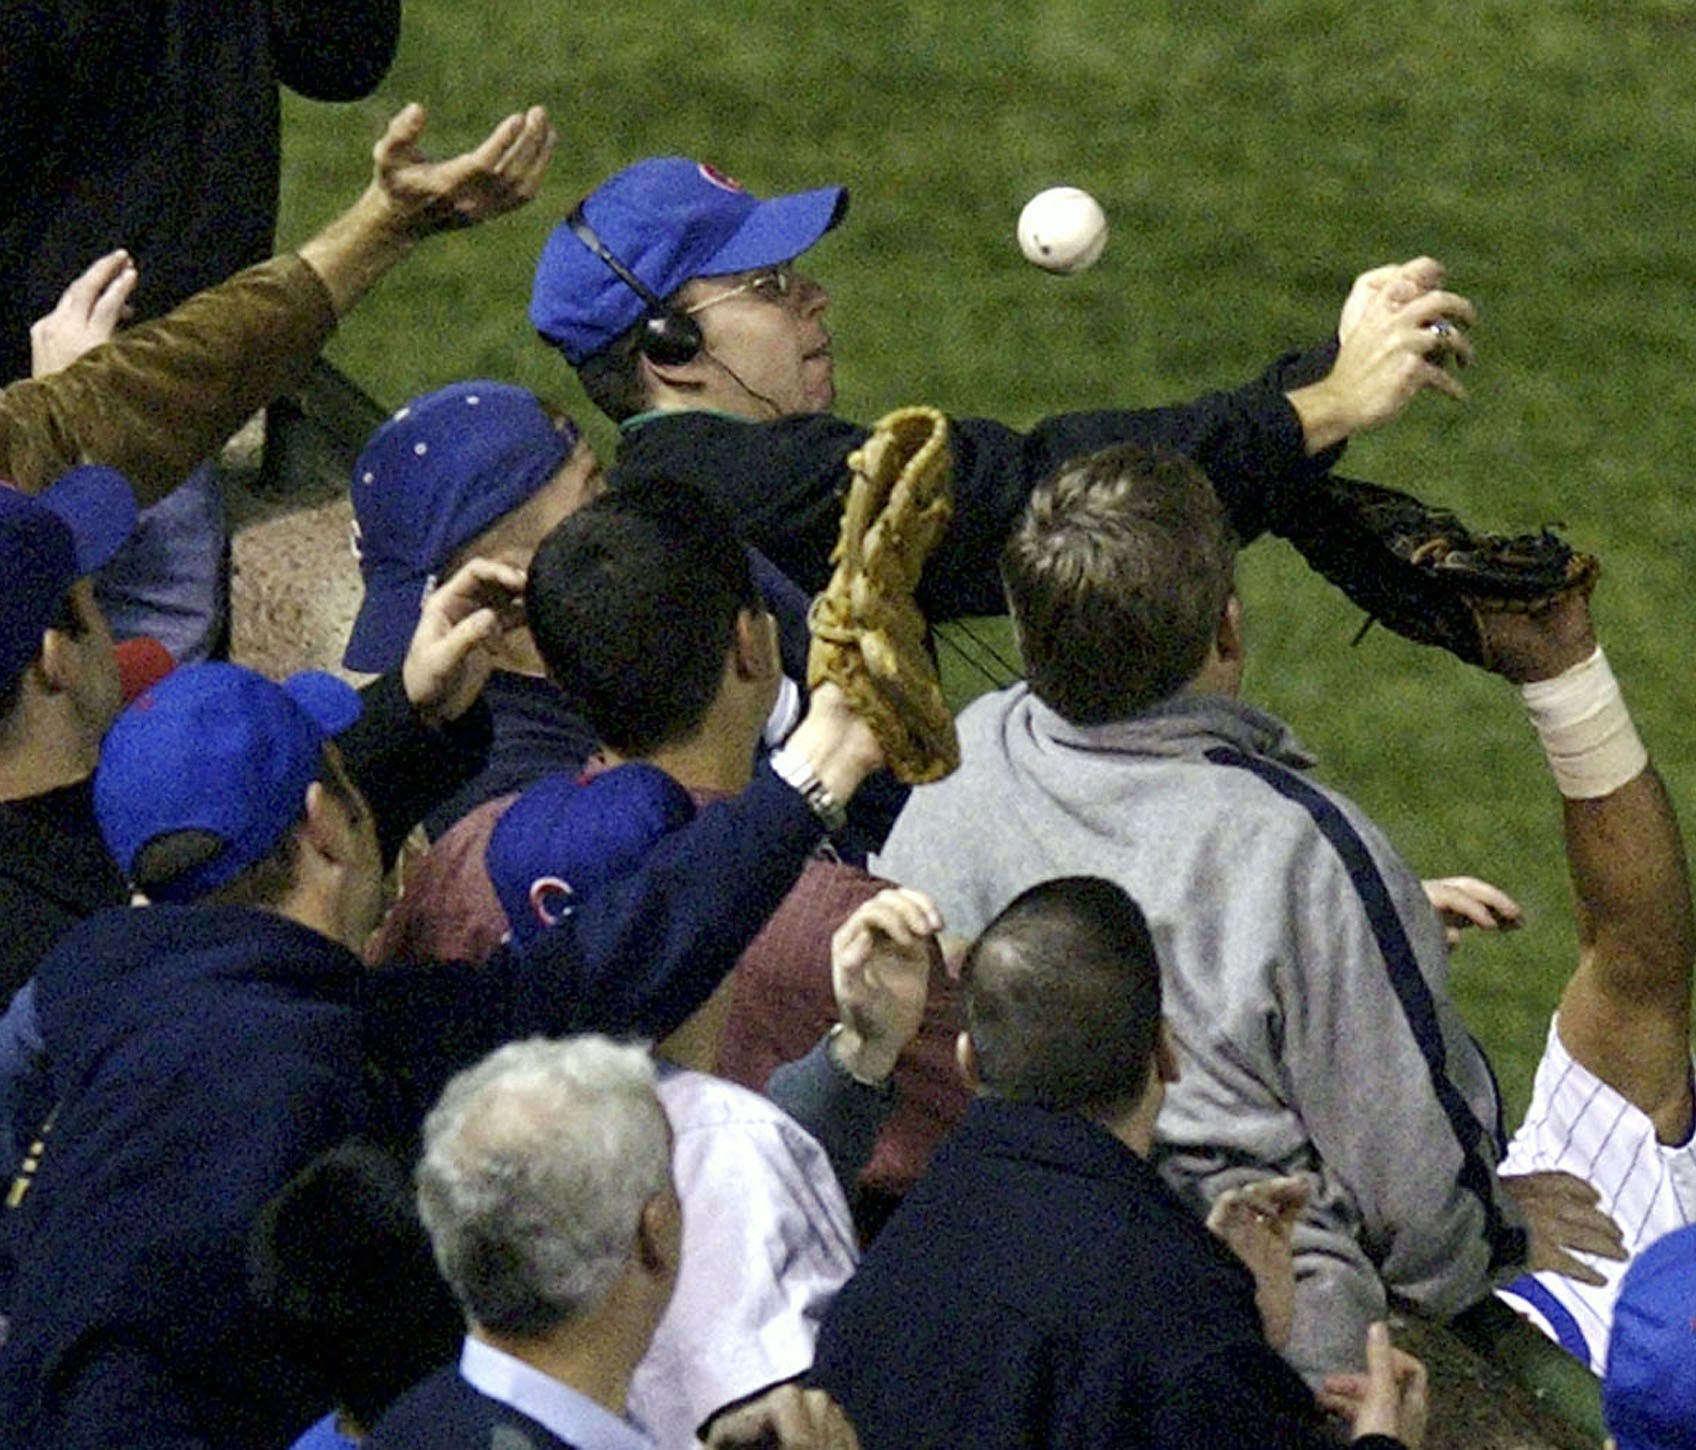 Cubs fan Steve Bartman interfered with a foul ball during Game 6 of the 2003 NLCS.